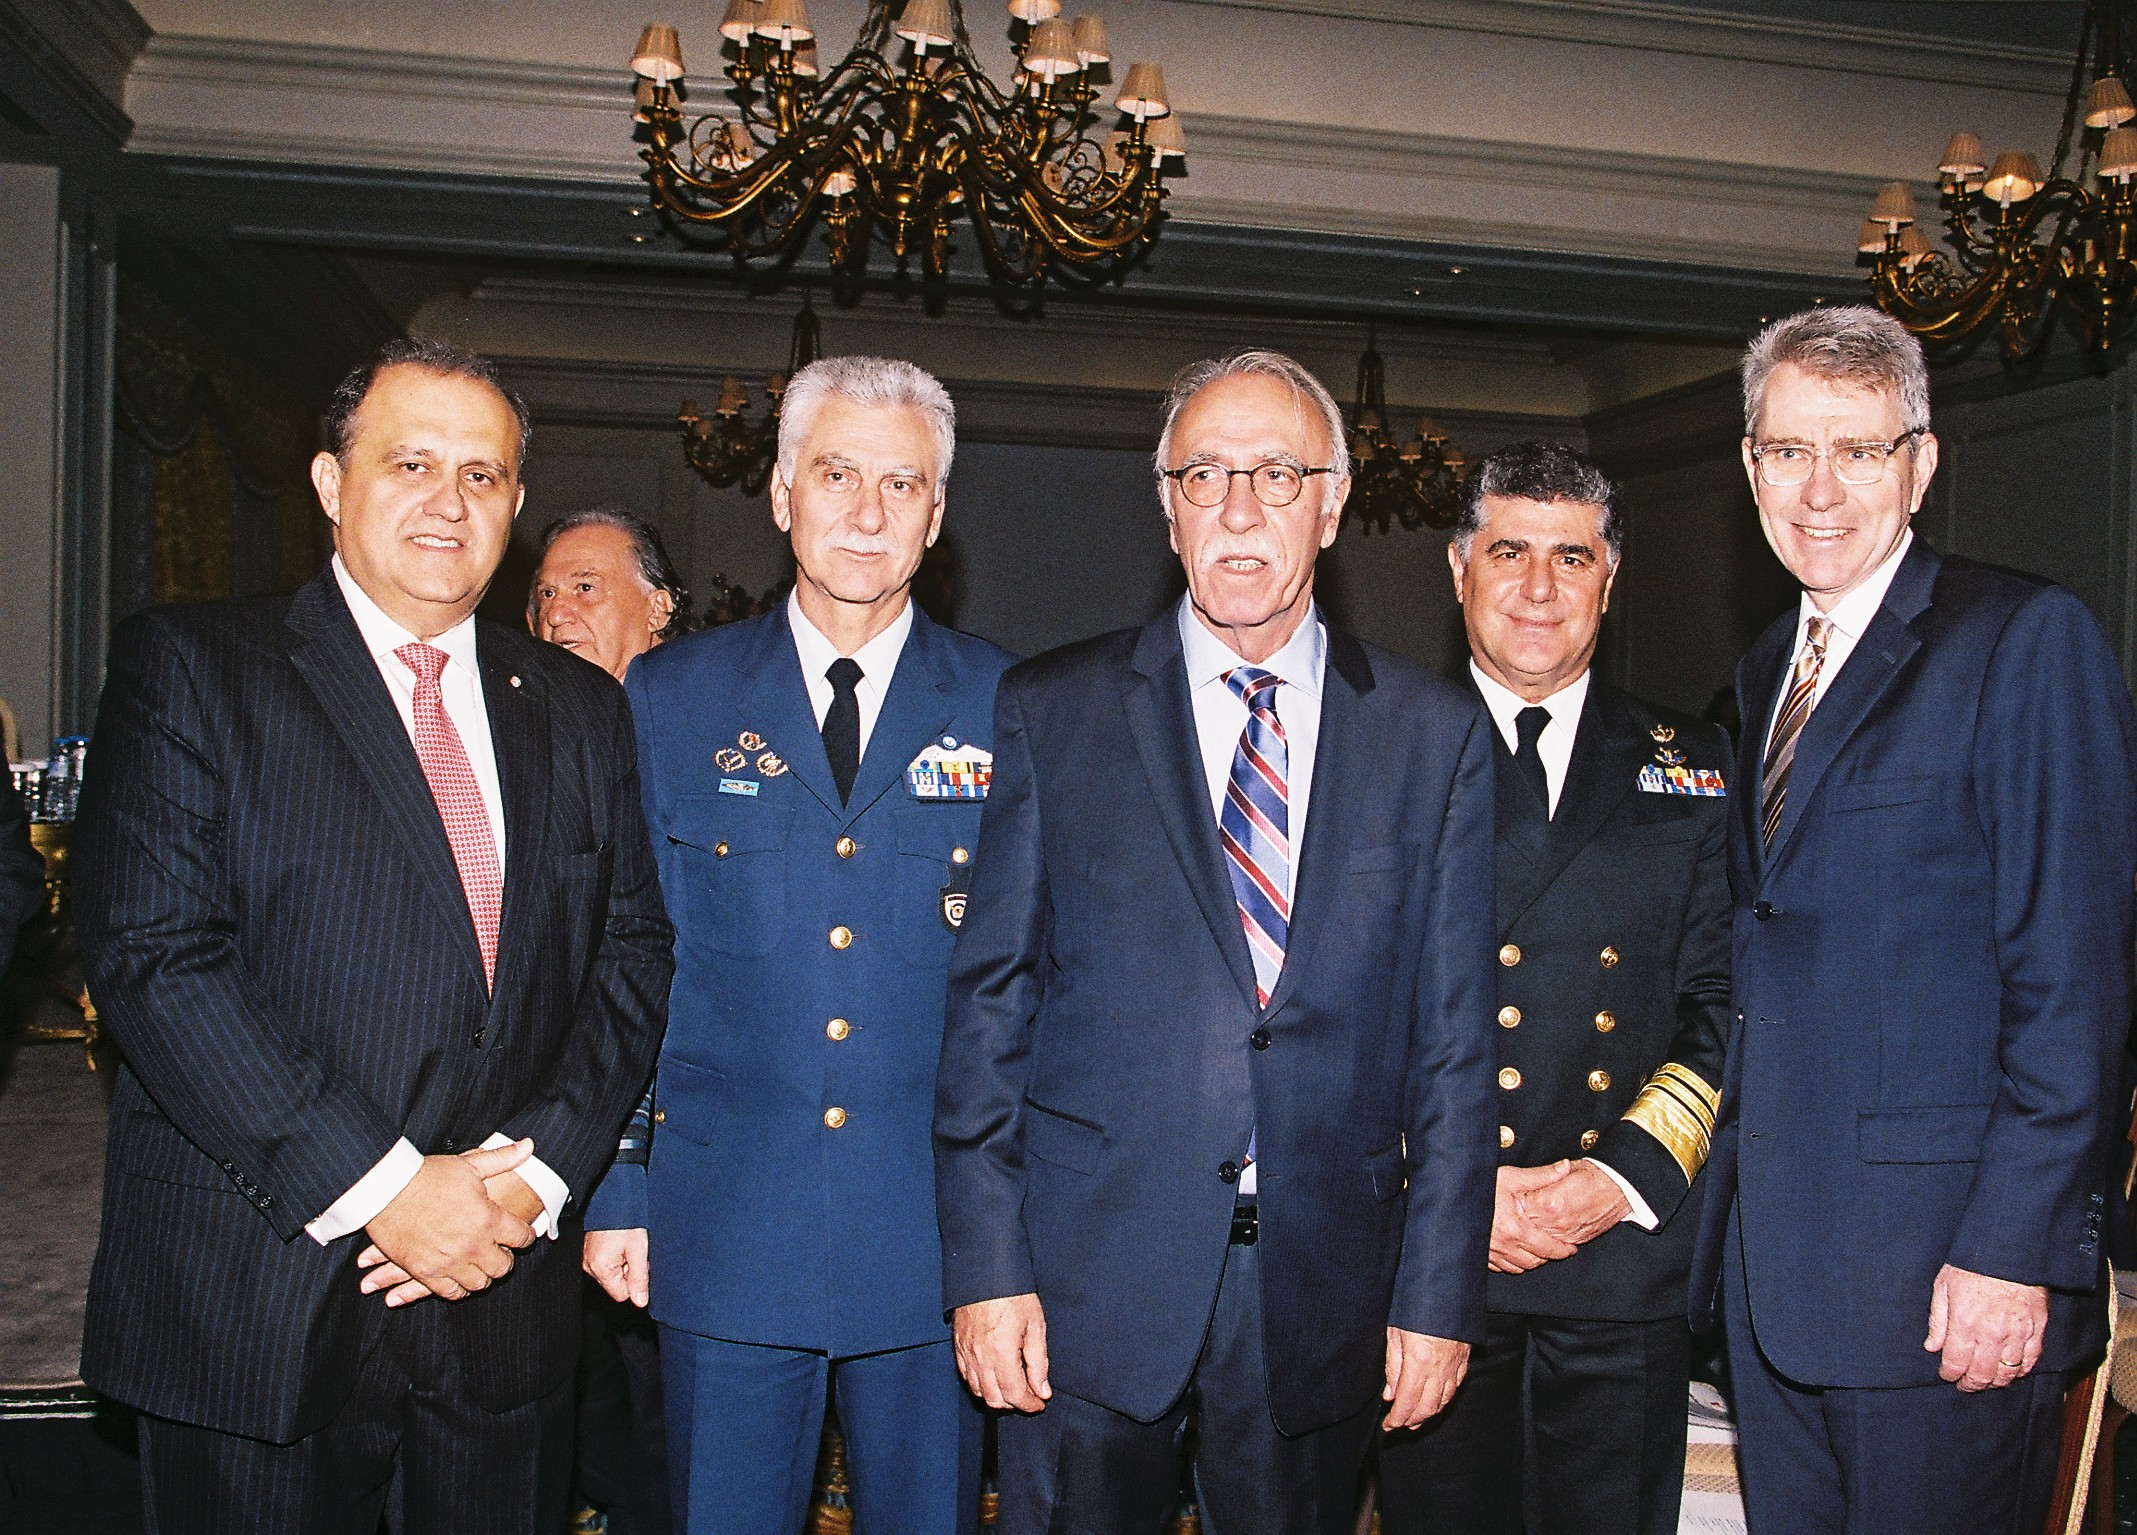 (L-R) Nick Larigakis; Lieutenant General Christos Christodoulou, Chief of the Hellenic Air Force General Staff; Deputy Minister Dimitris Vitsas; Vice Admiral Nicolaos Tsounis, Chief of the Hellenic Navy General Staff; Ambassador Geoffrey Pyatt.